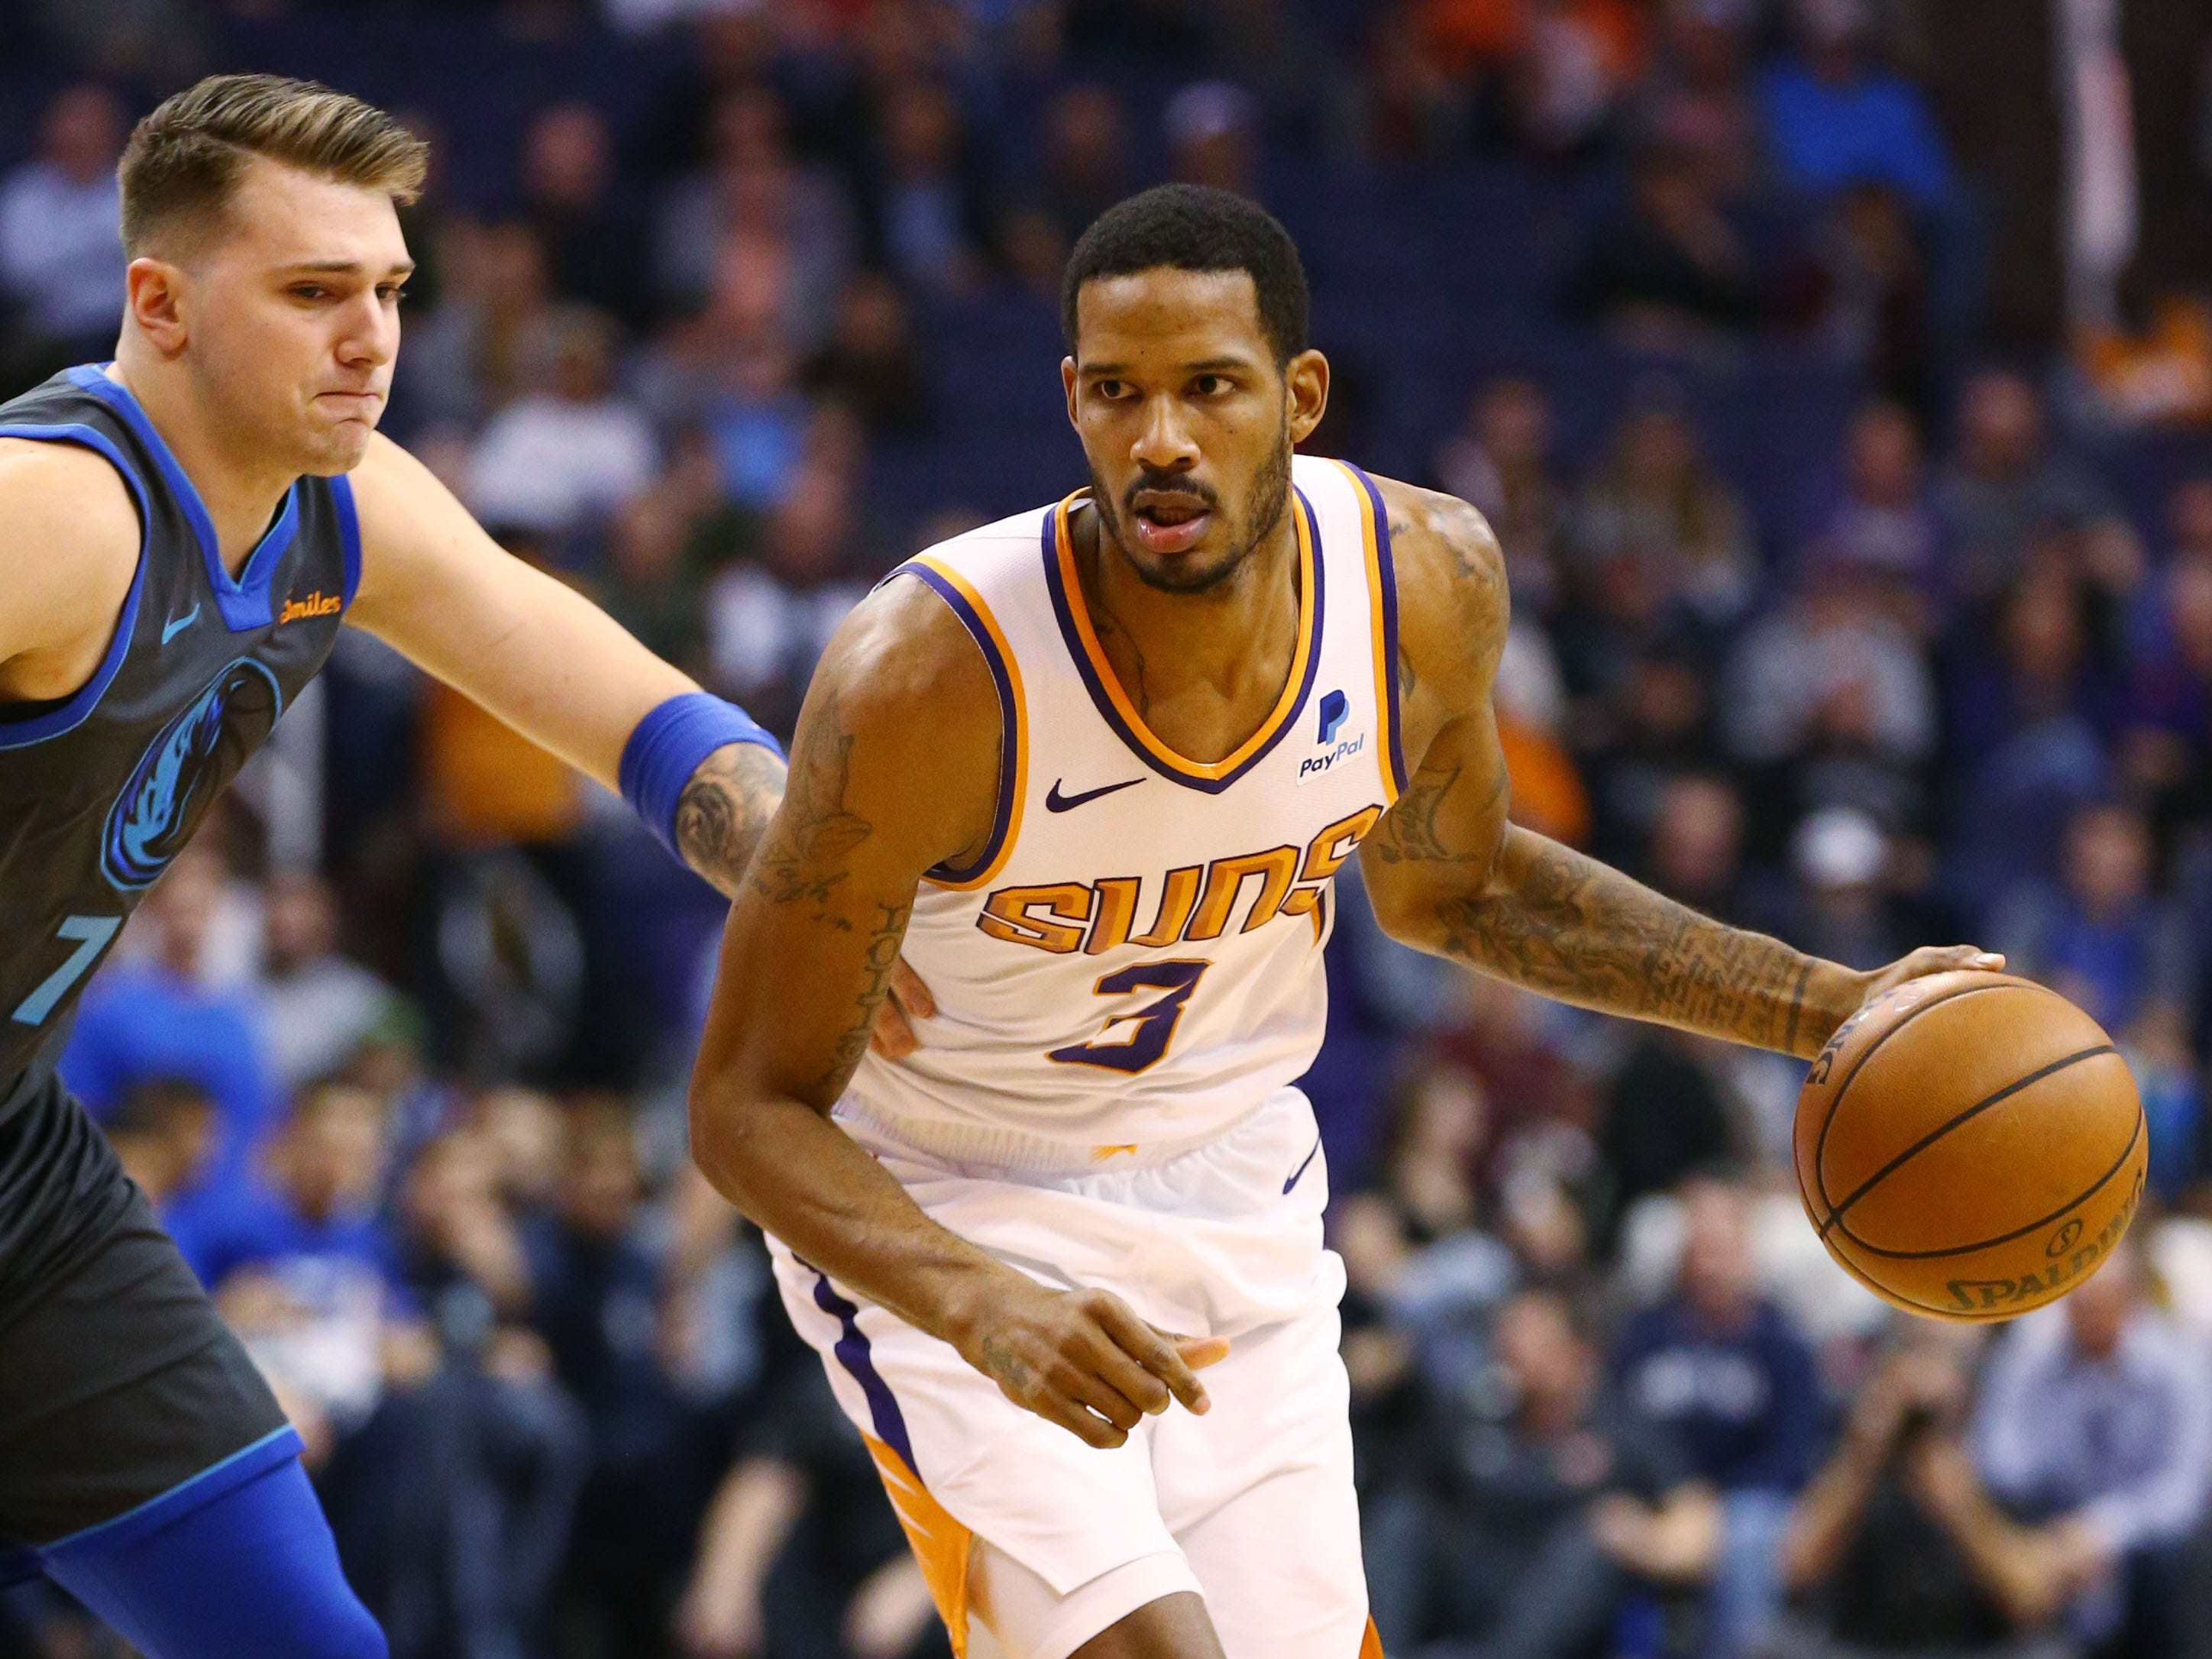 Phoenix Suns forward Trevor Ariza drives to the lane against the Dallas Mavericks' Dwight Powell  during a game on Dec. 13 at Talking Stick Resort Arena.